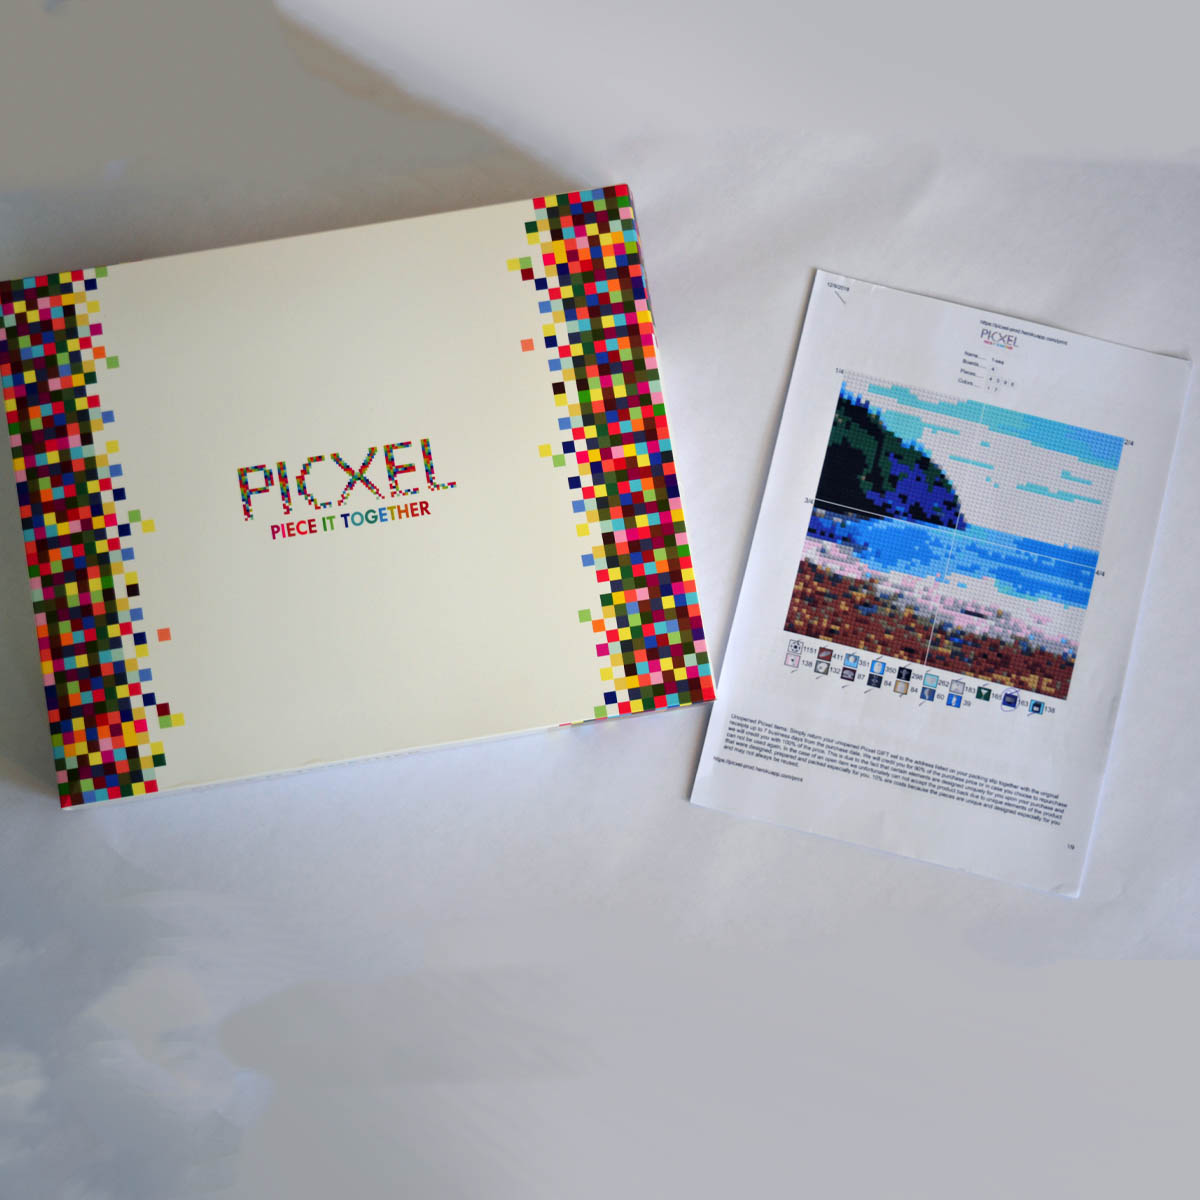 """HUNTER's Beach PIcxel - The Gleason Family has provided this amazingly cool one-of-a-kind item! The """"Picxel"""" is a lego-like kit that when assembled creates a """"picture"""" of Hunter's Beach. A perfect summer-long activity for the entire family, the end result will be something that can proudly be displayed and admired. Find out more about Picxel here."""